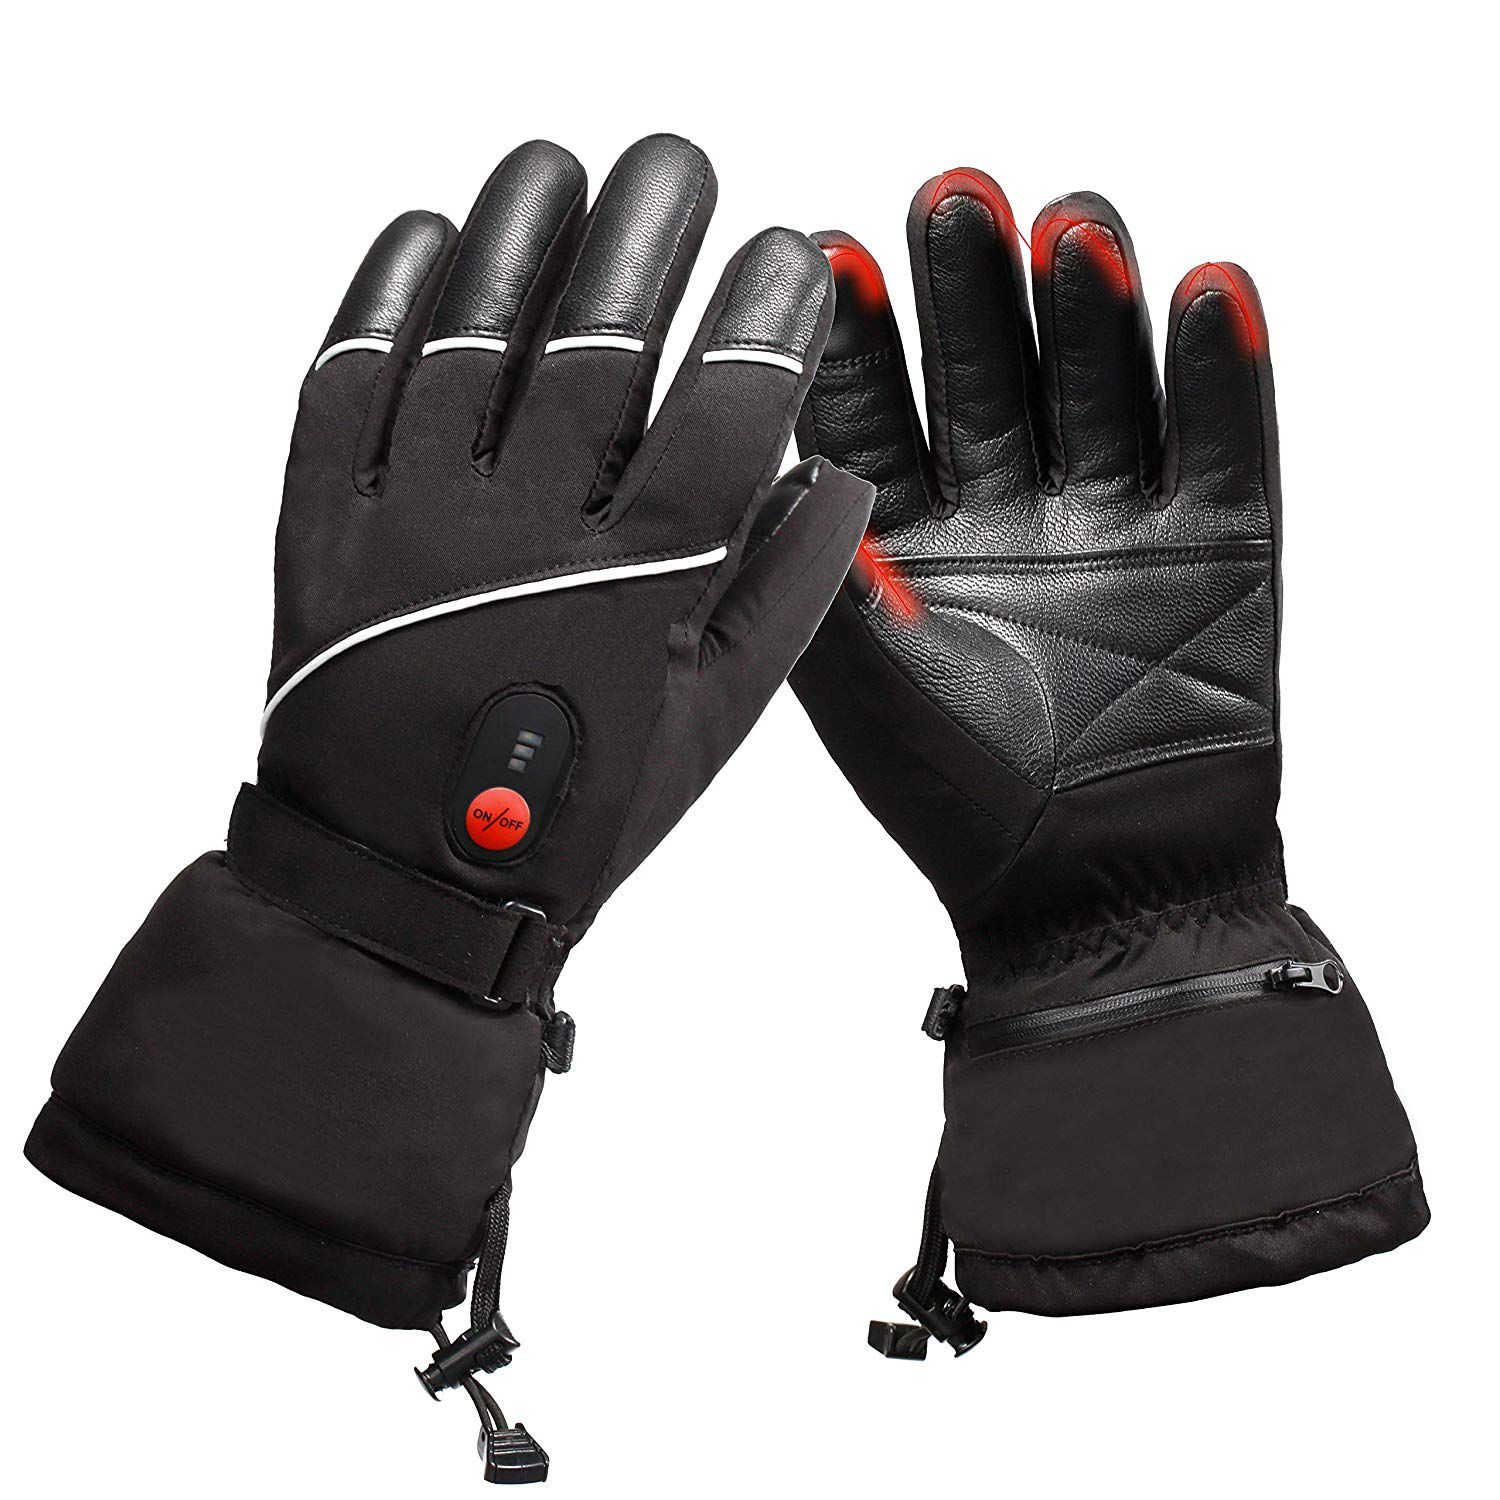 Svspt Heated Gloves Rechargeable Electric Hand Warmer Heated Gloves Gloves Hand Warmers